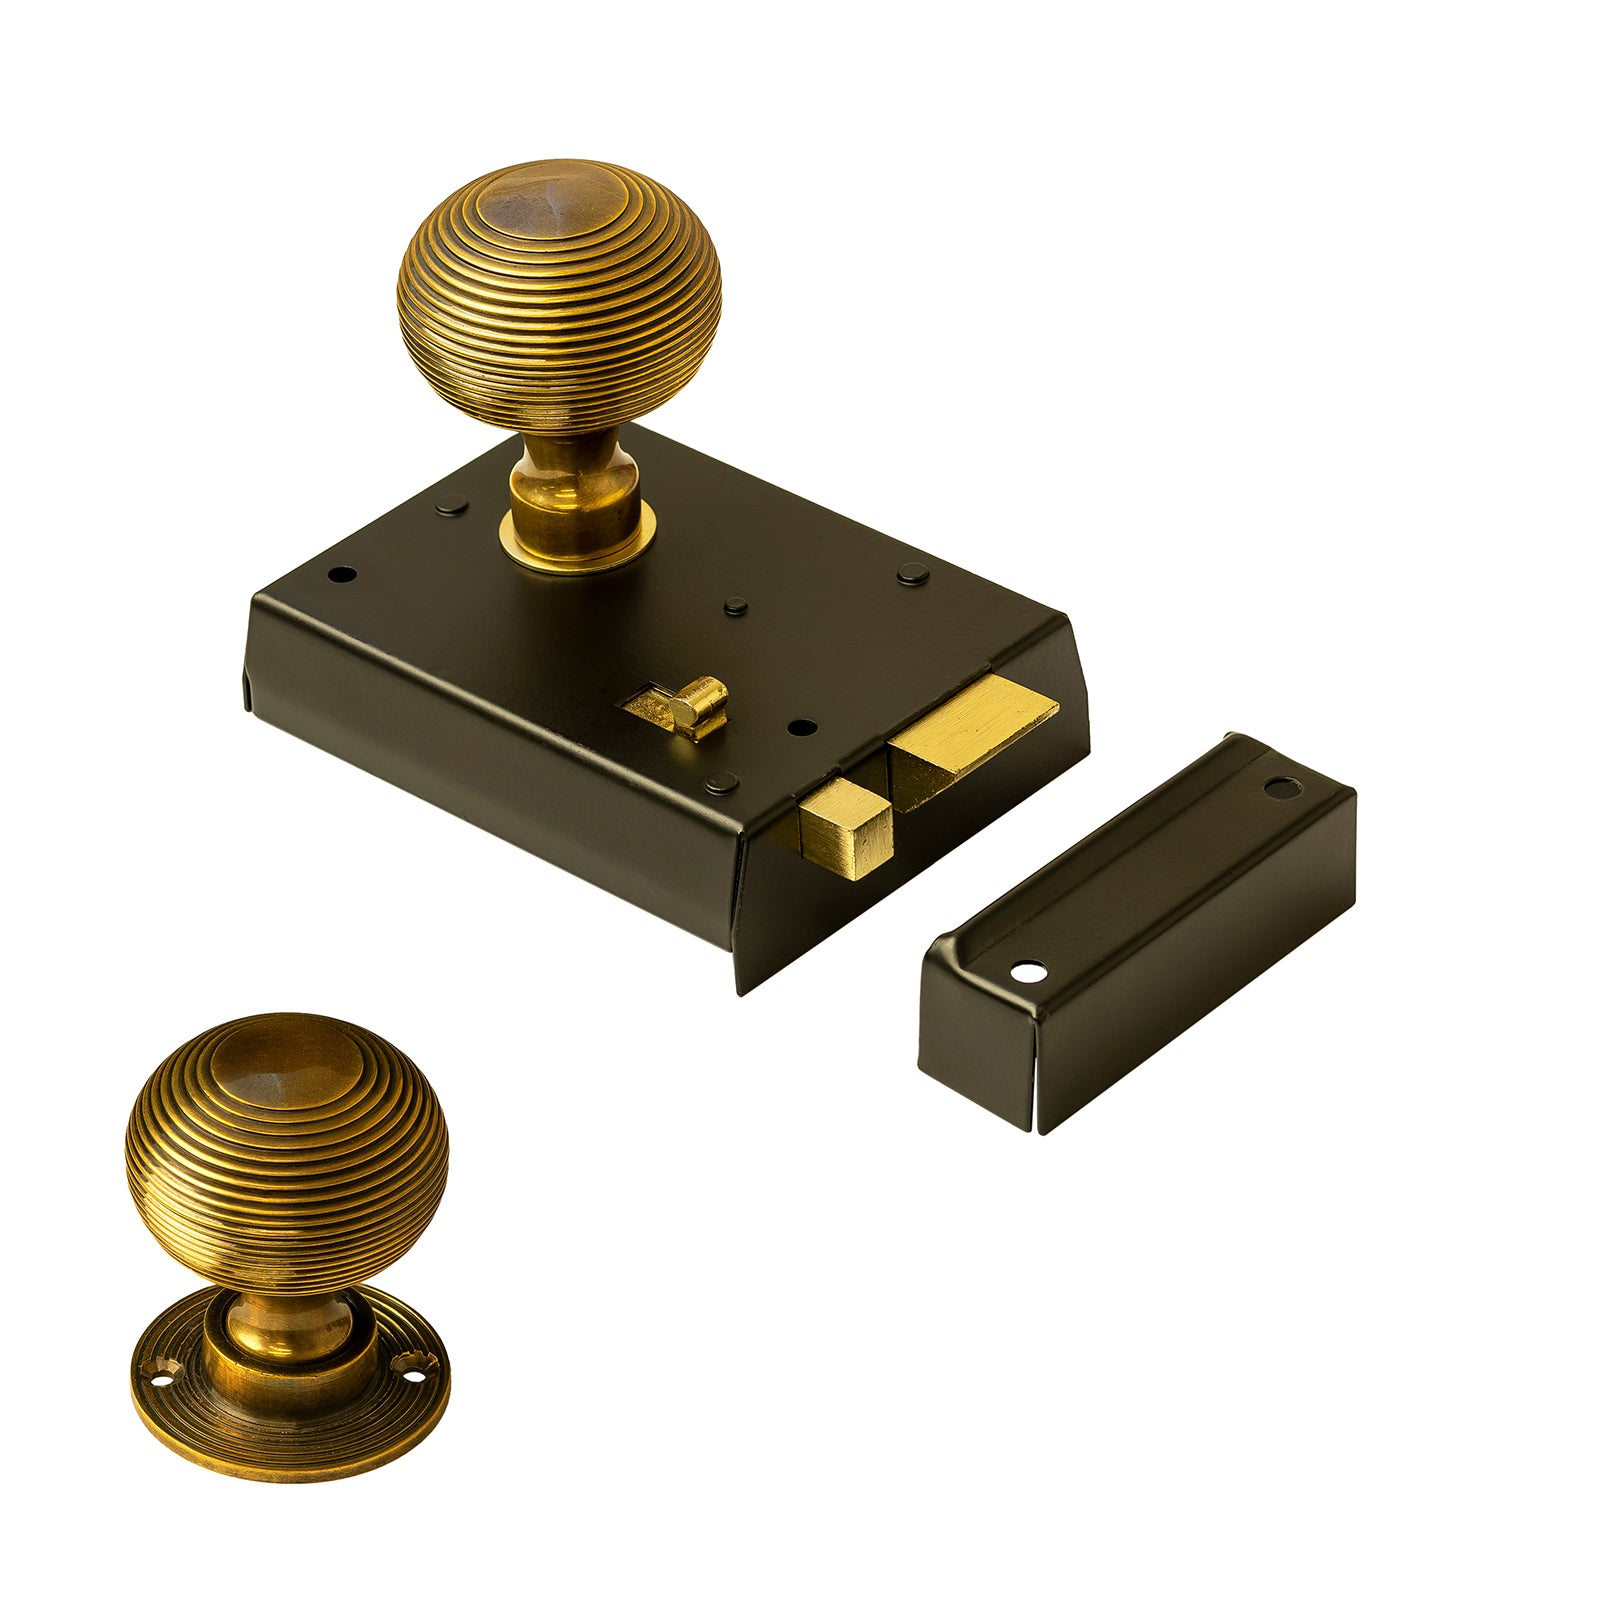 Bathroom rim lock with antique brass beehive door knob SHOW